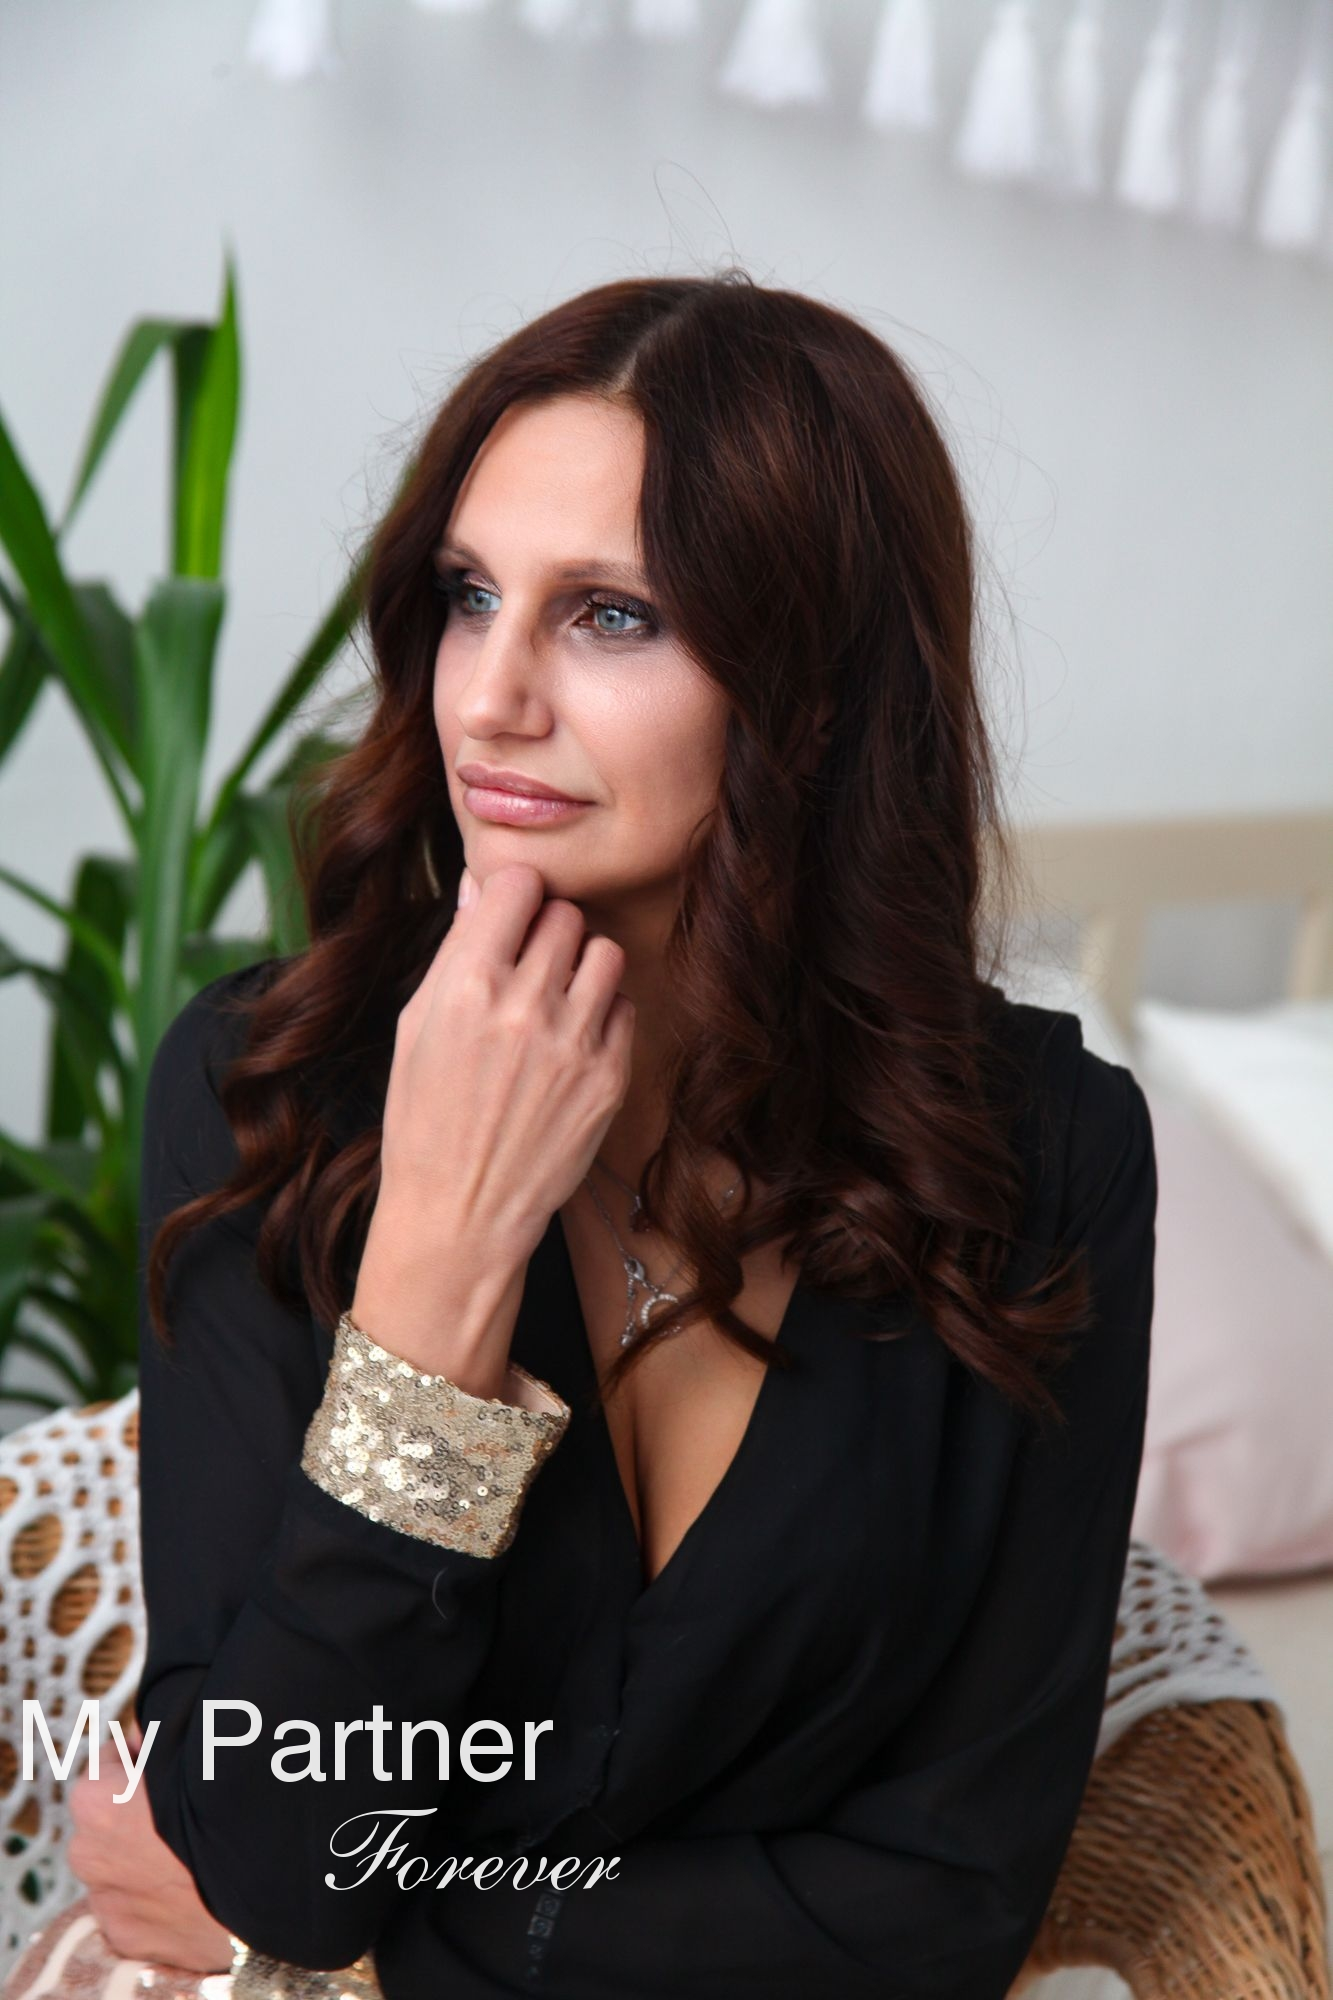 Datingsite to Meet Charming Russian Woman Nataliya from Pskov, Russia